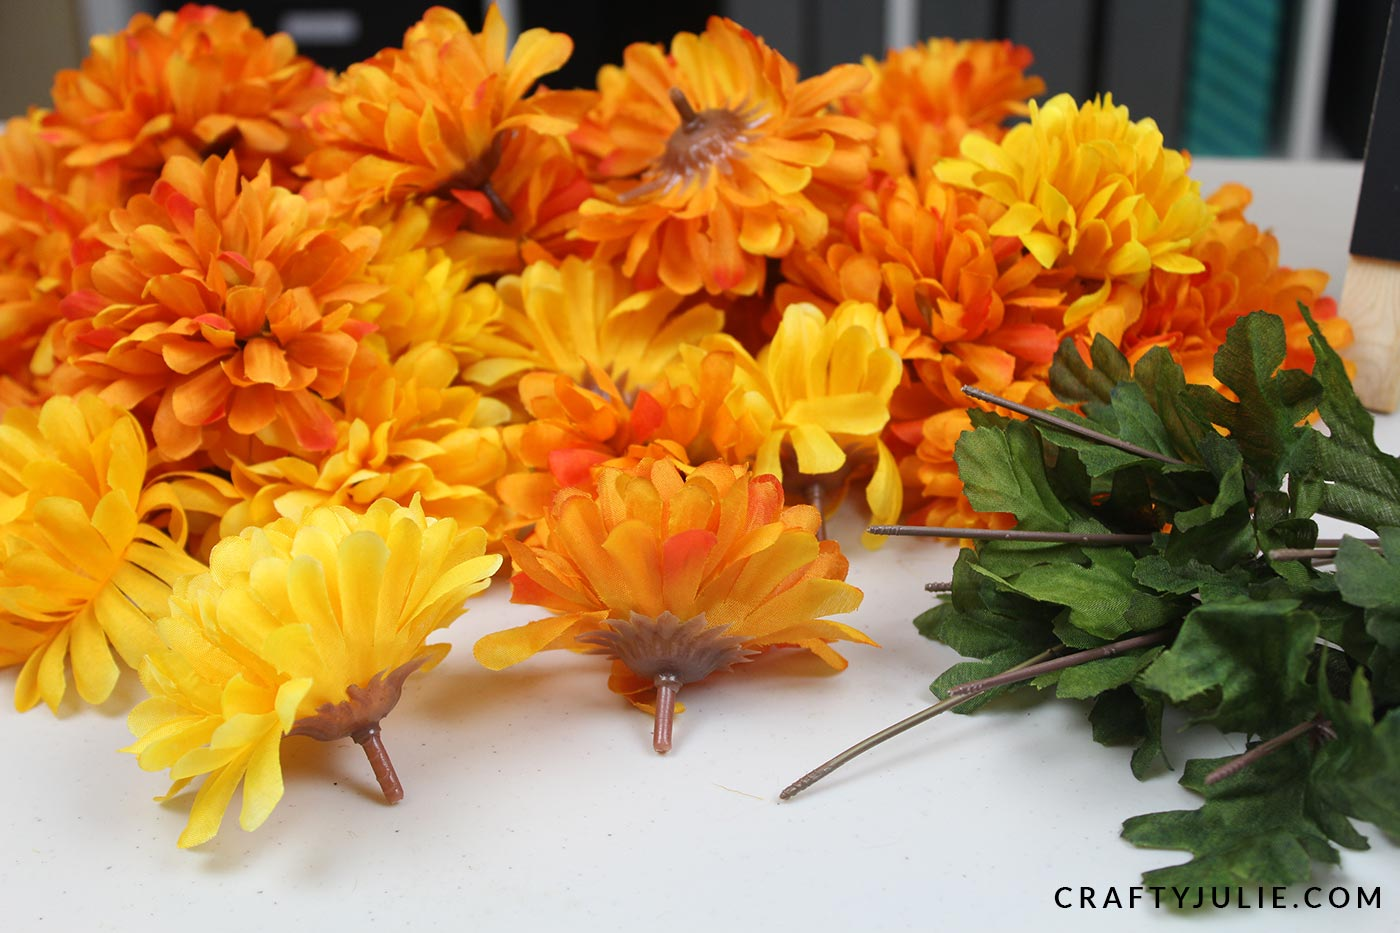 orange and yellow fake flowers with bud tips attached